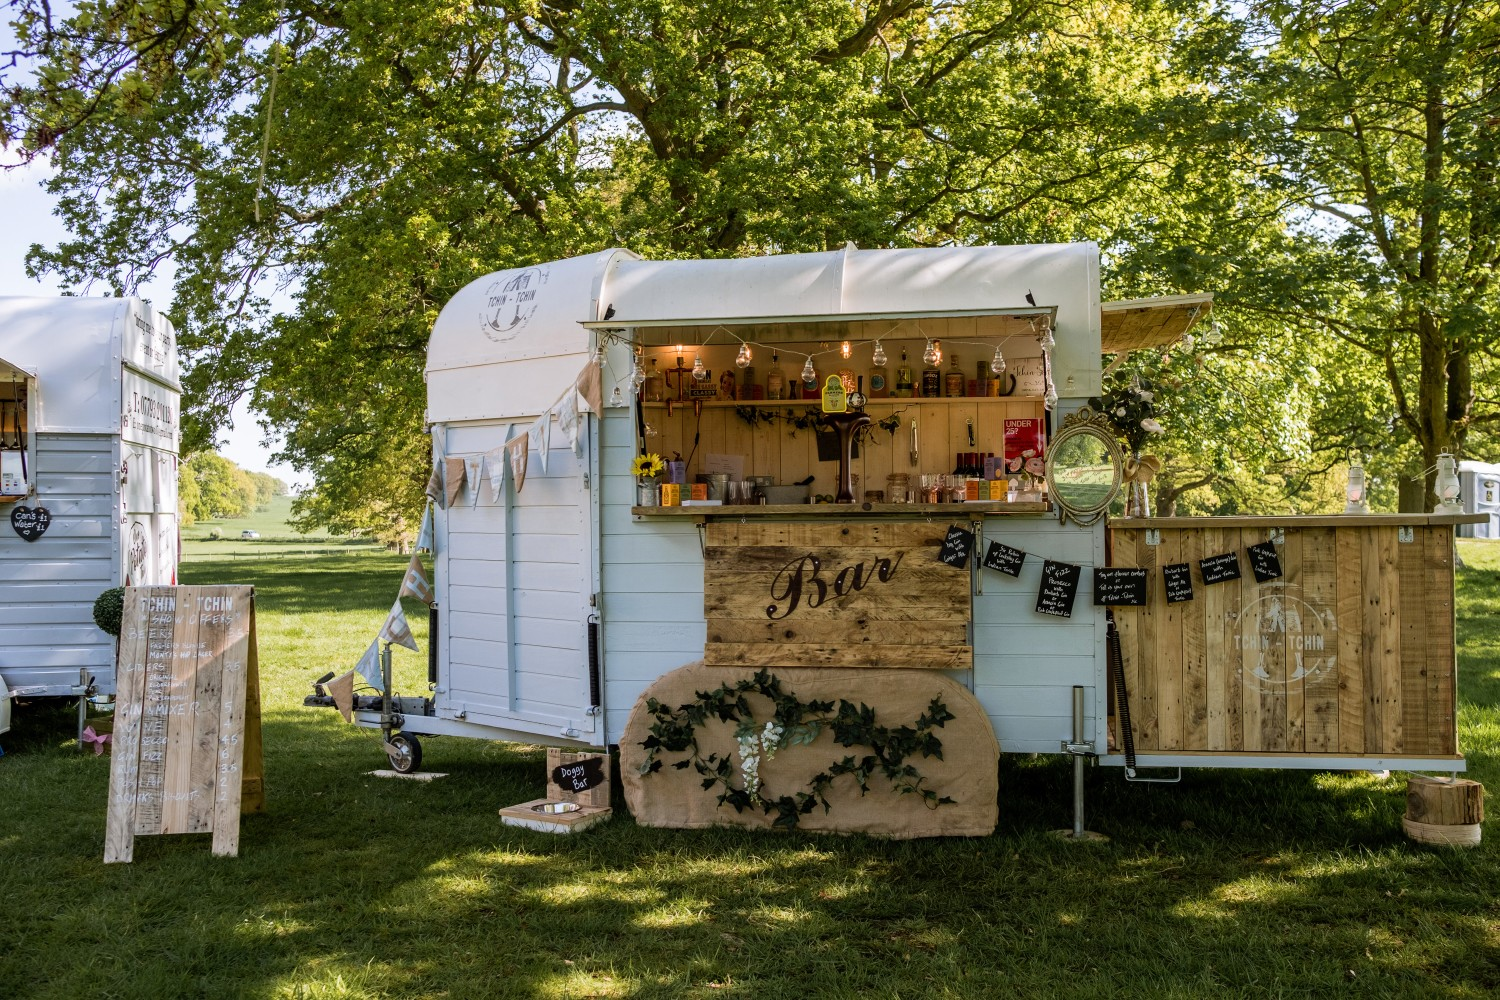 ed brown photography - how to plan a festival wedding - outdoor bar - tchin tchin mobile bar - the unconventional wedding festival (2)